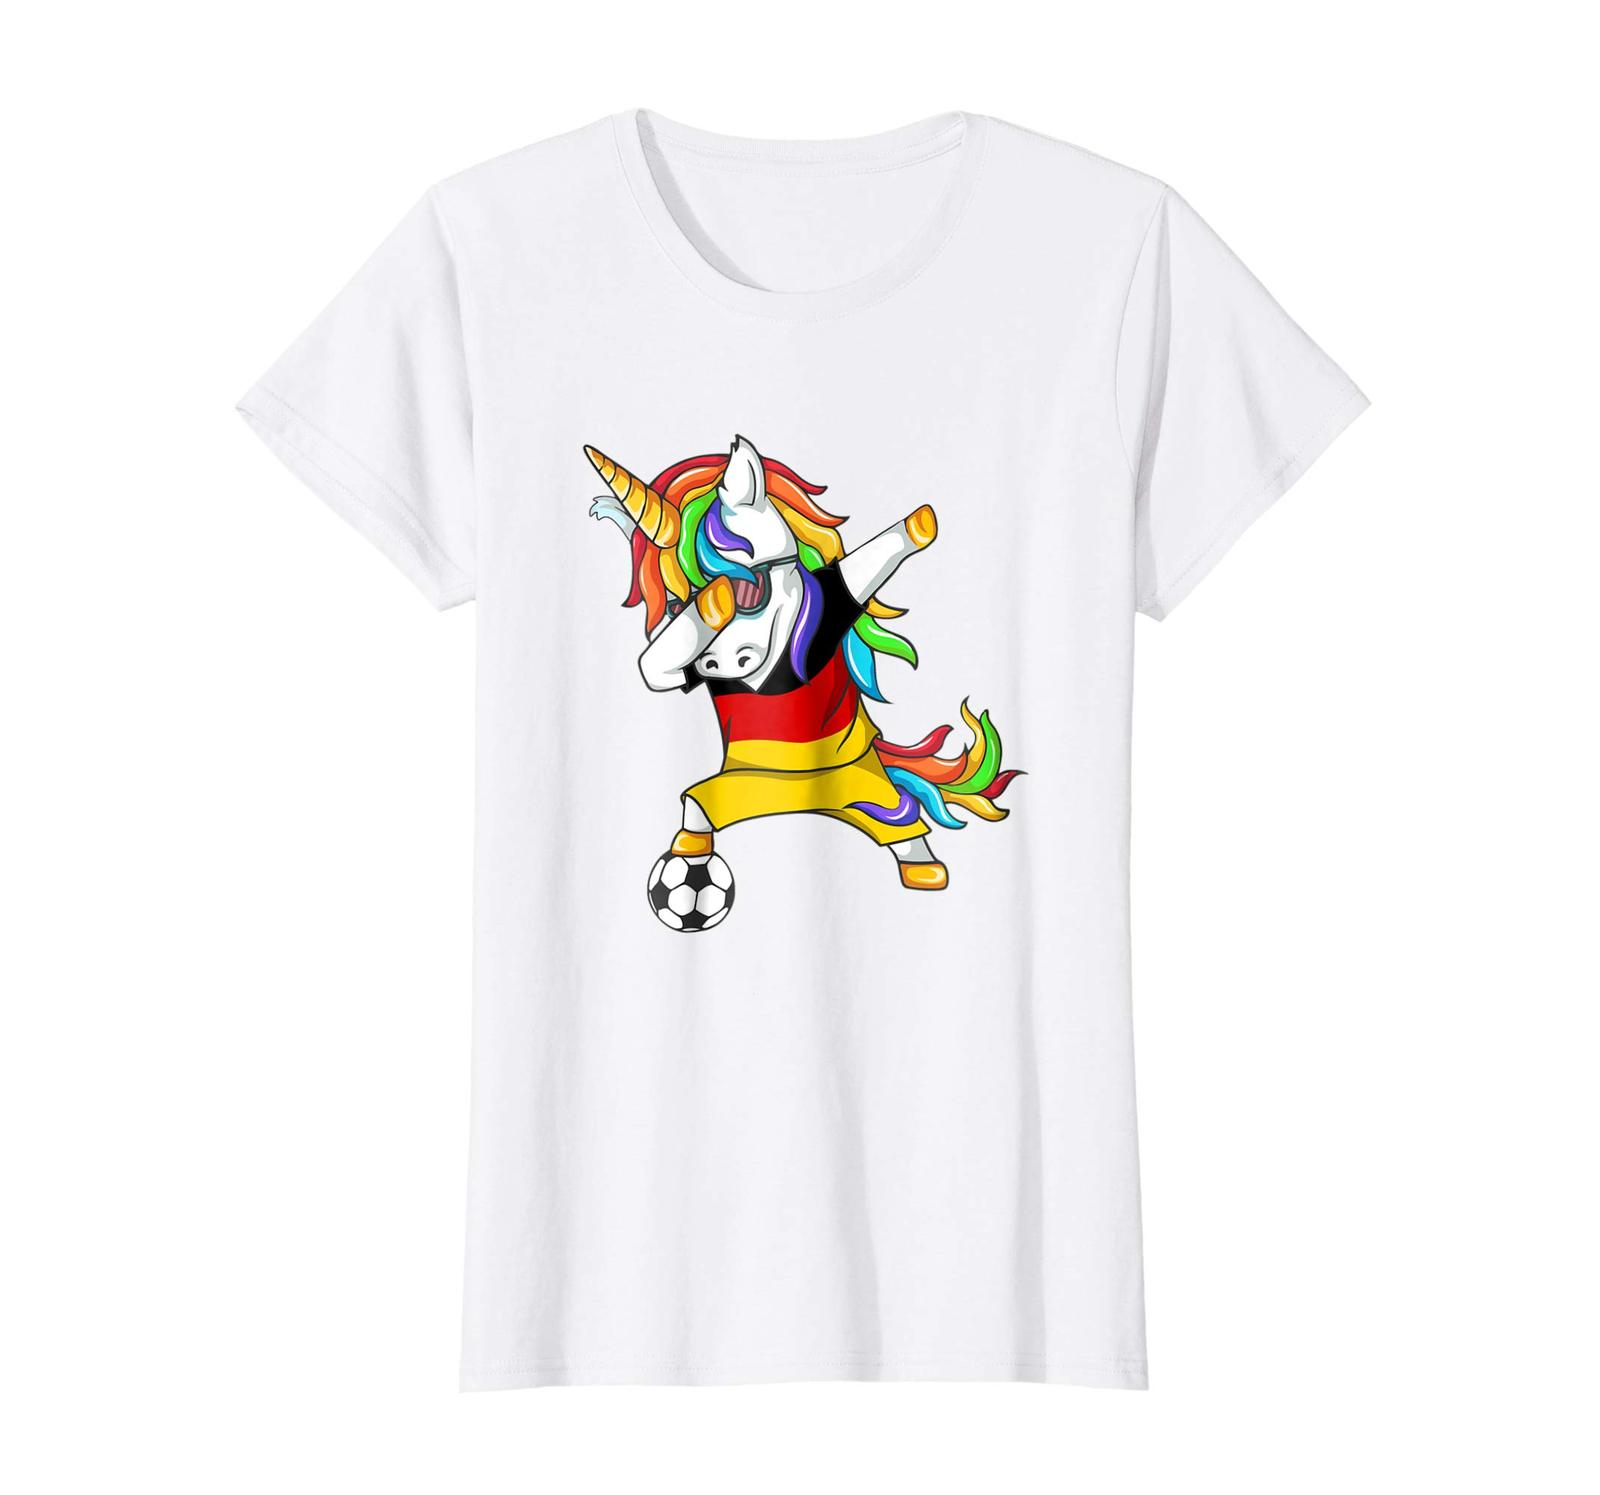 Primary image for New Shirts - Dabbing Soccer 2018 Unicorn Germany T-Shirt Wowen